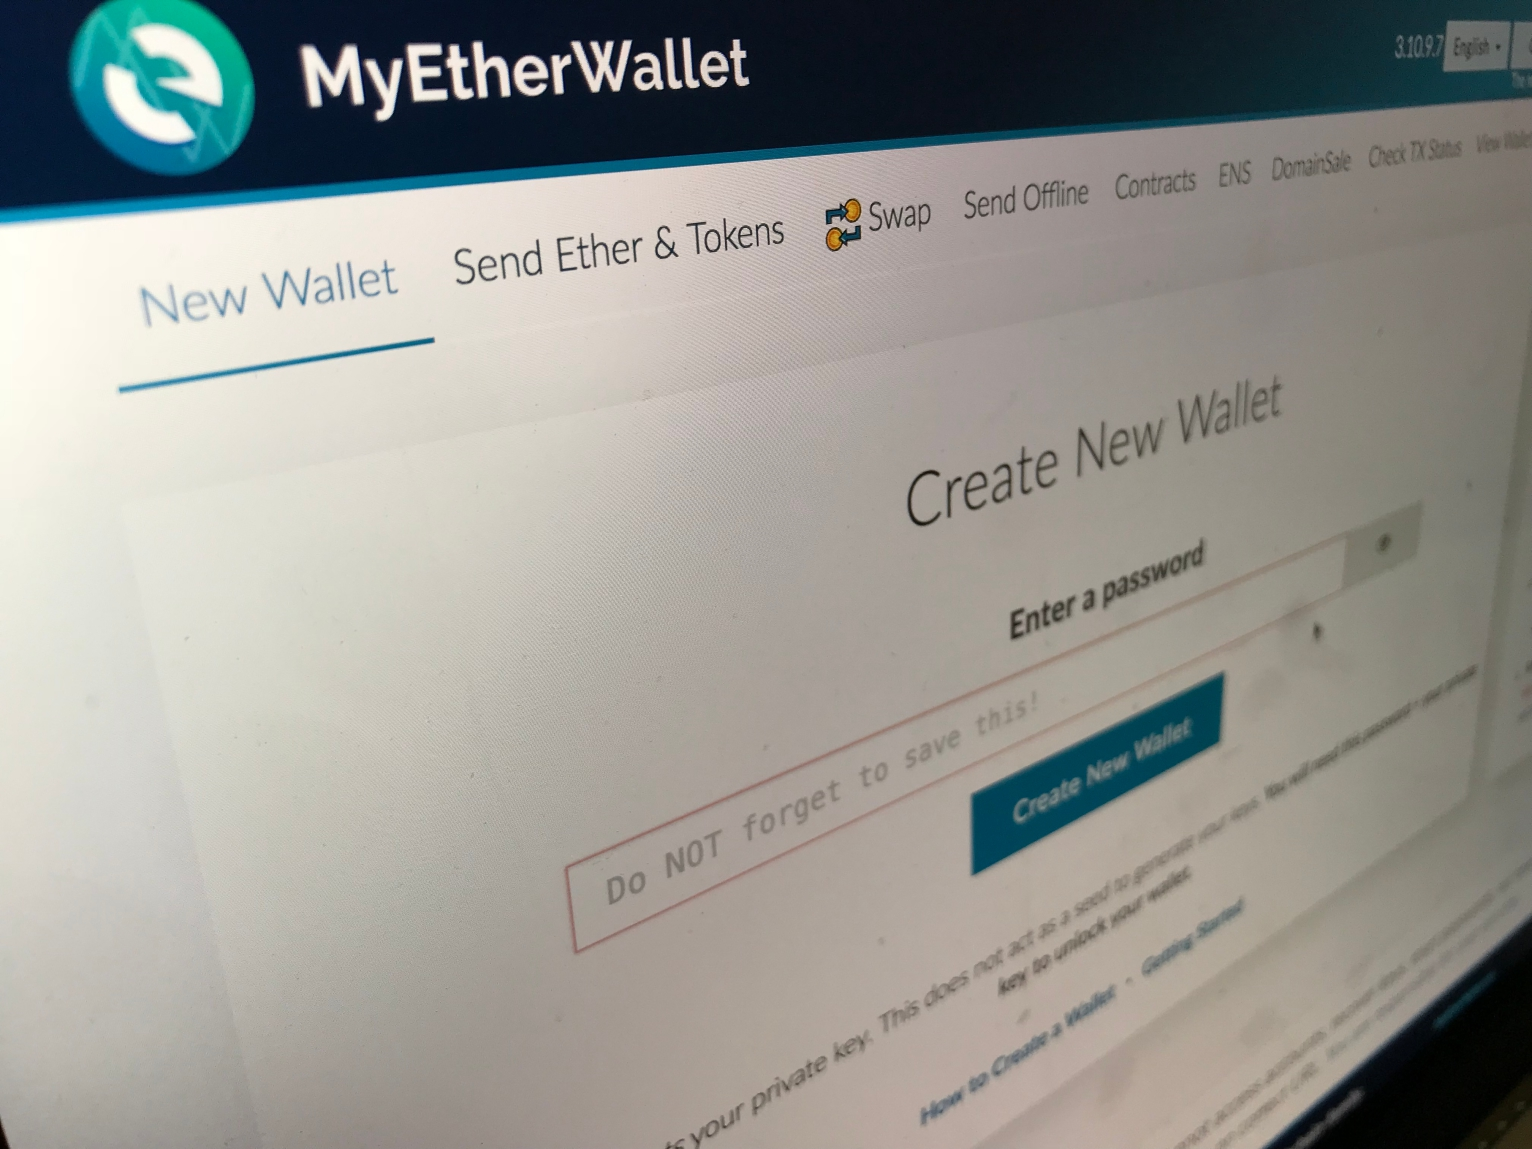 MyEtherWallet plans official iOS app after knockoff version is booted from App Store